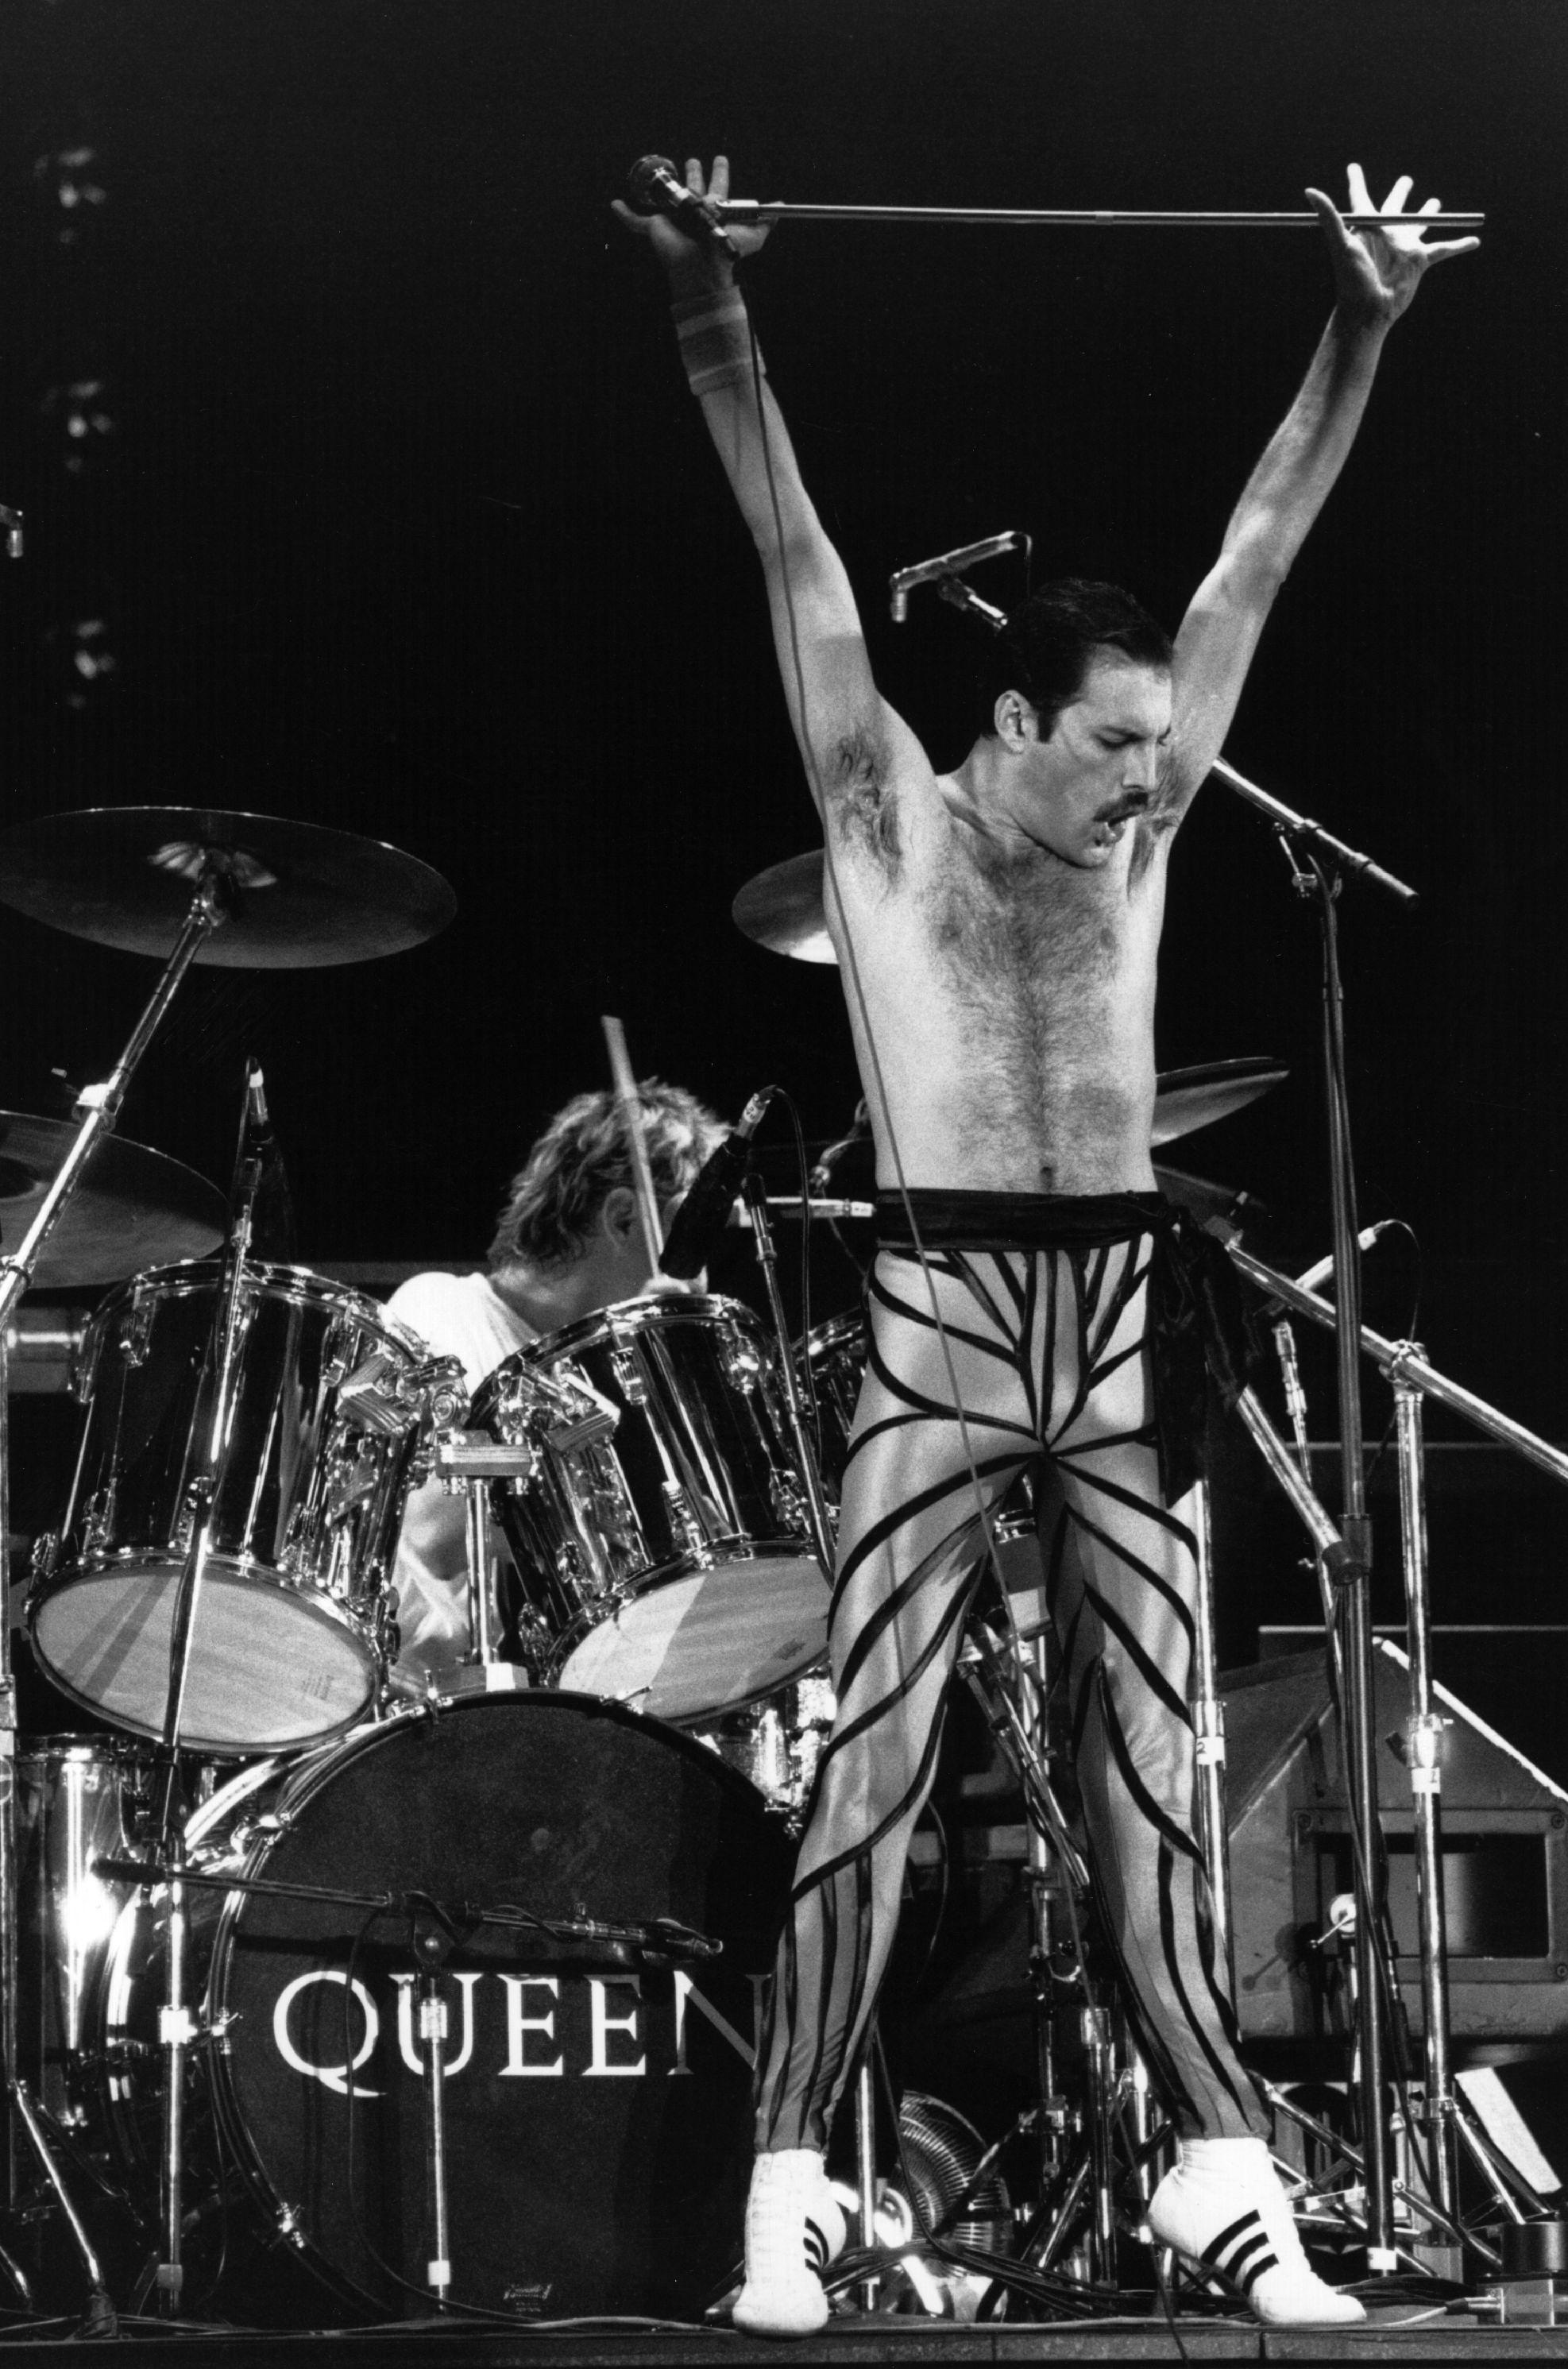 British stadium rock group Queen on stage, with lead singer Freddie Mercury (Frederick Bulsara, 1946 - 1991) in the foreground. Original Publication: People Disc - HU0462 (Photo by Express Newspapers/Getty Images)